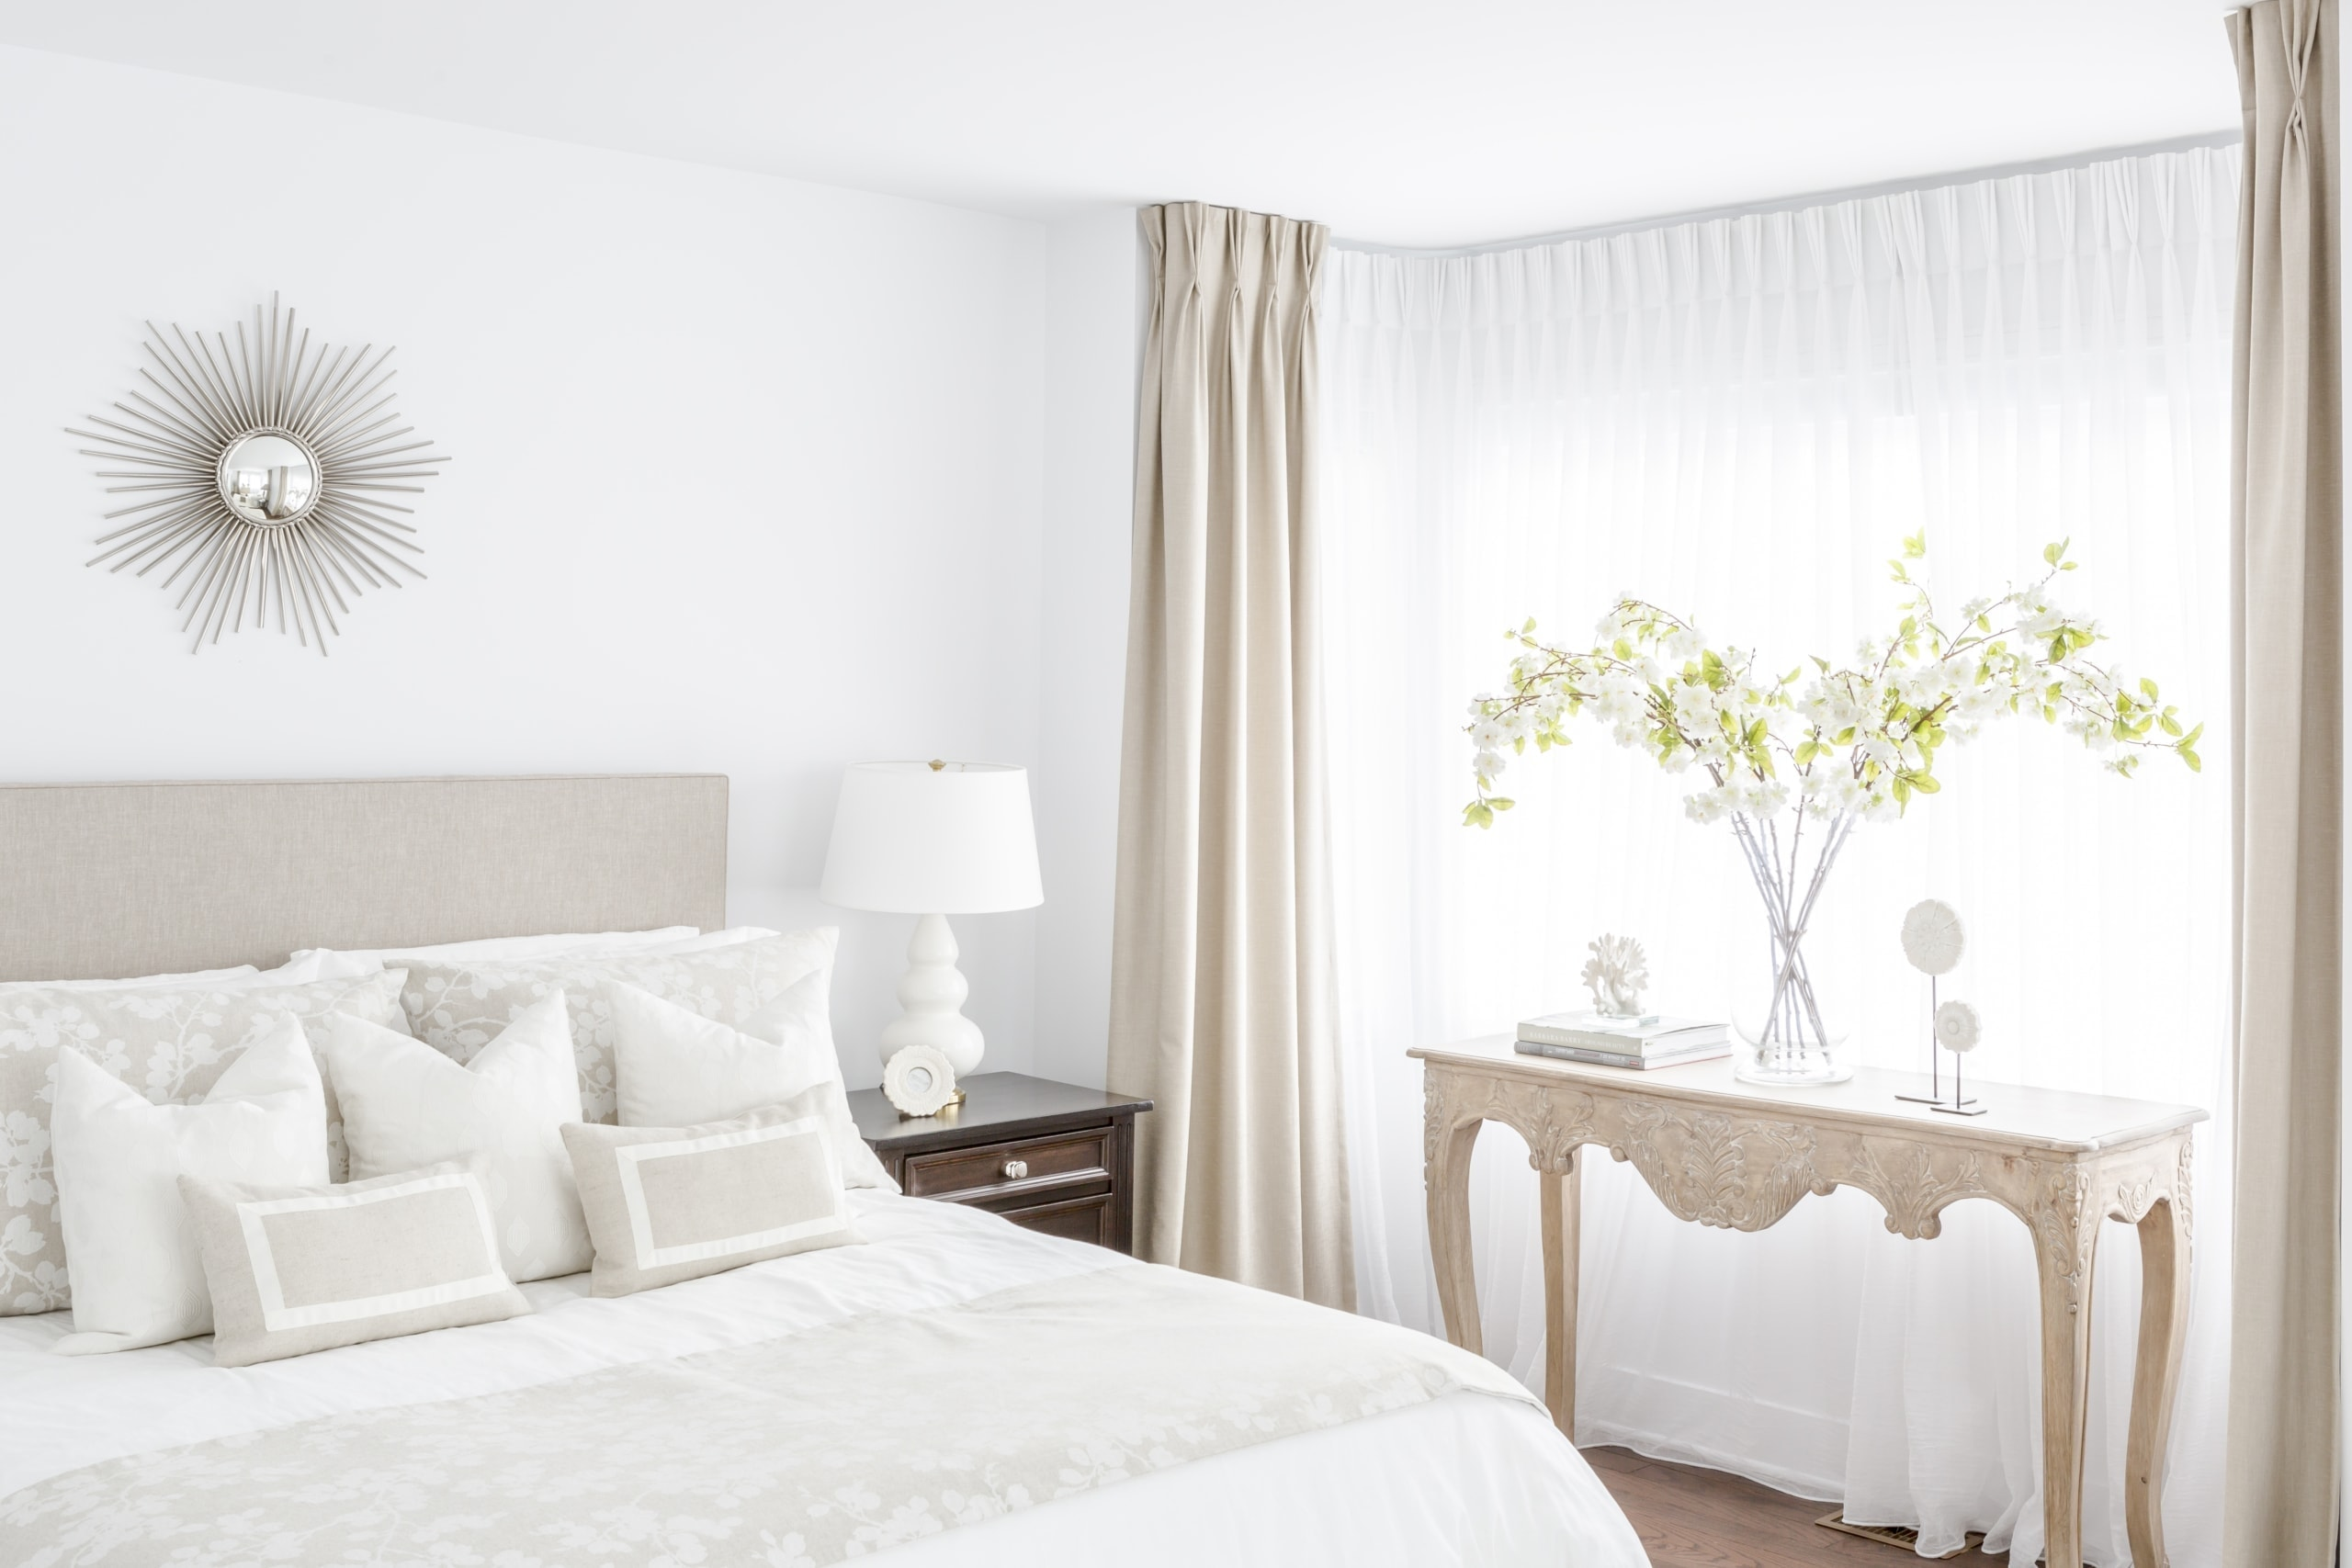 Bright white bed and pink table against the wall inside the master bedroom